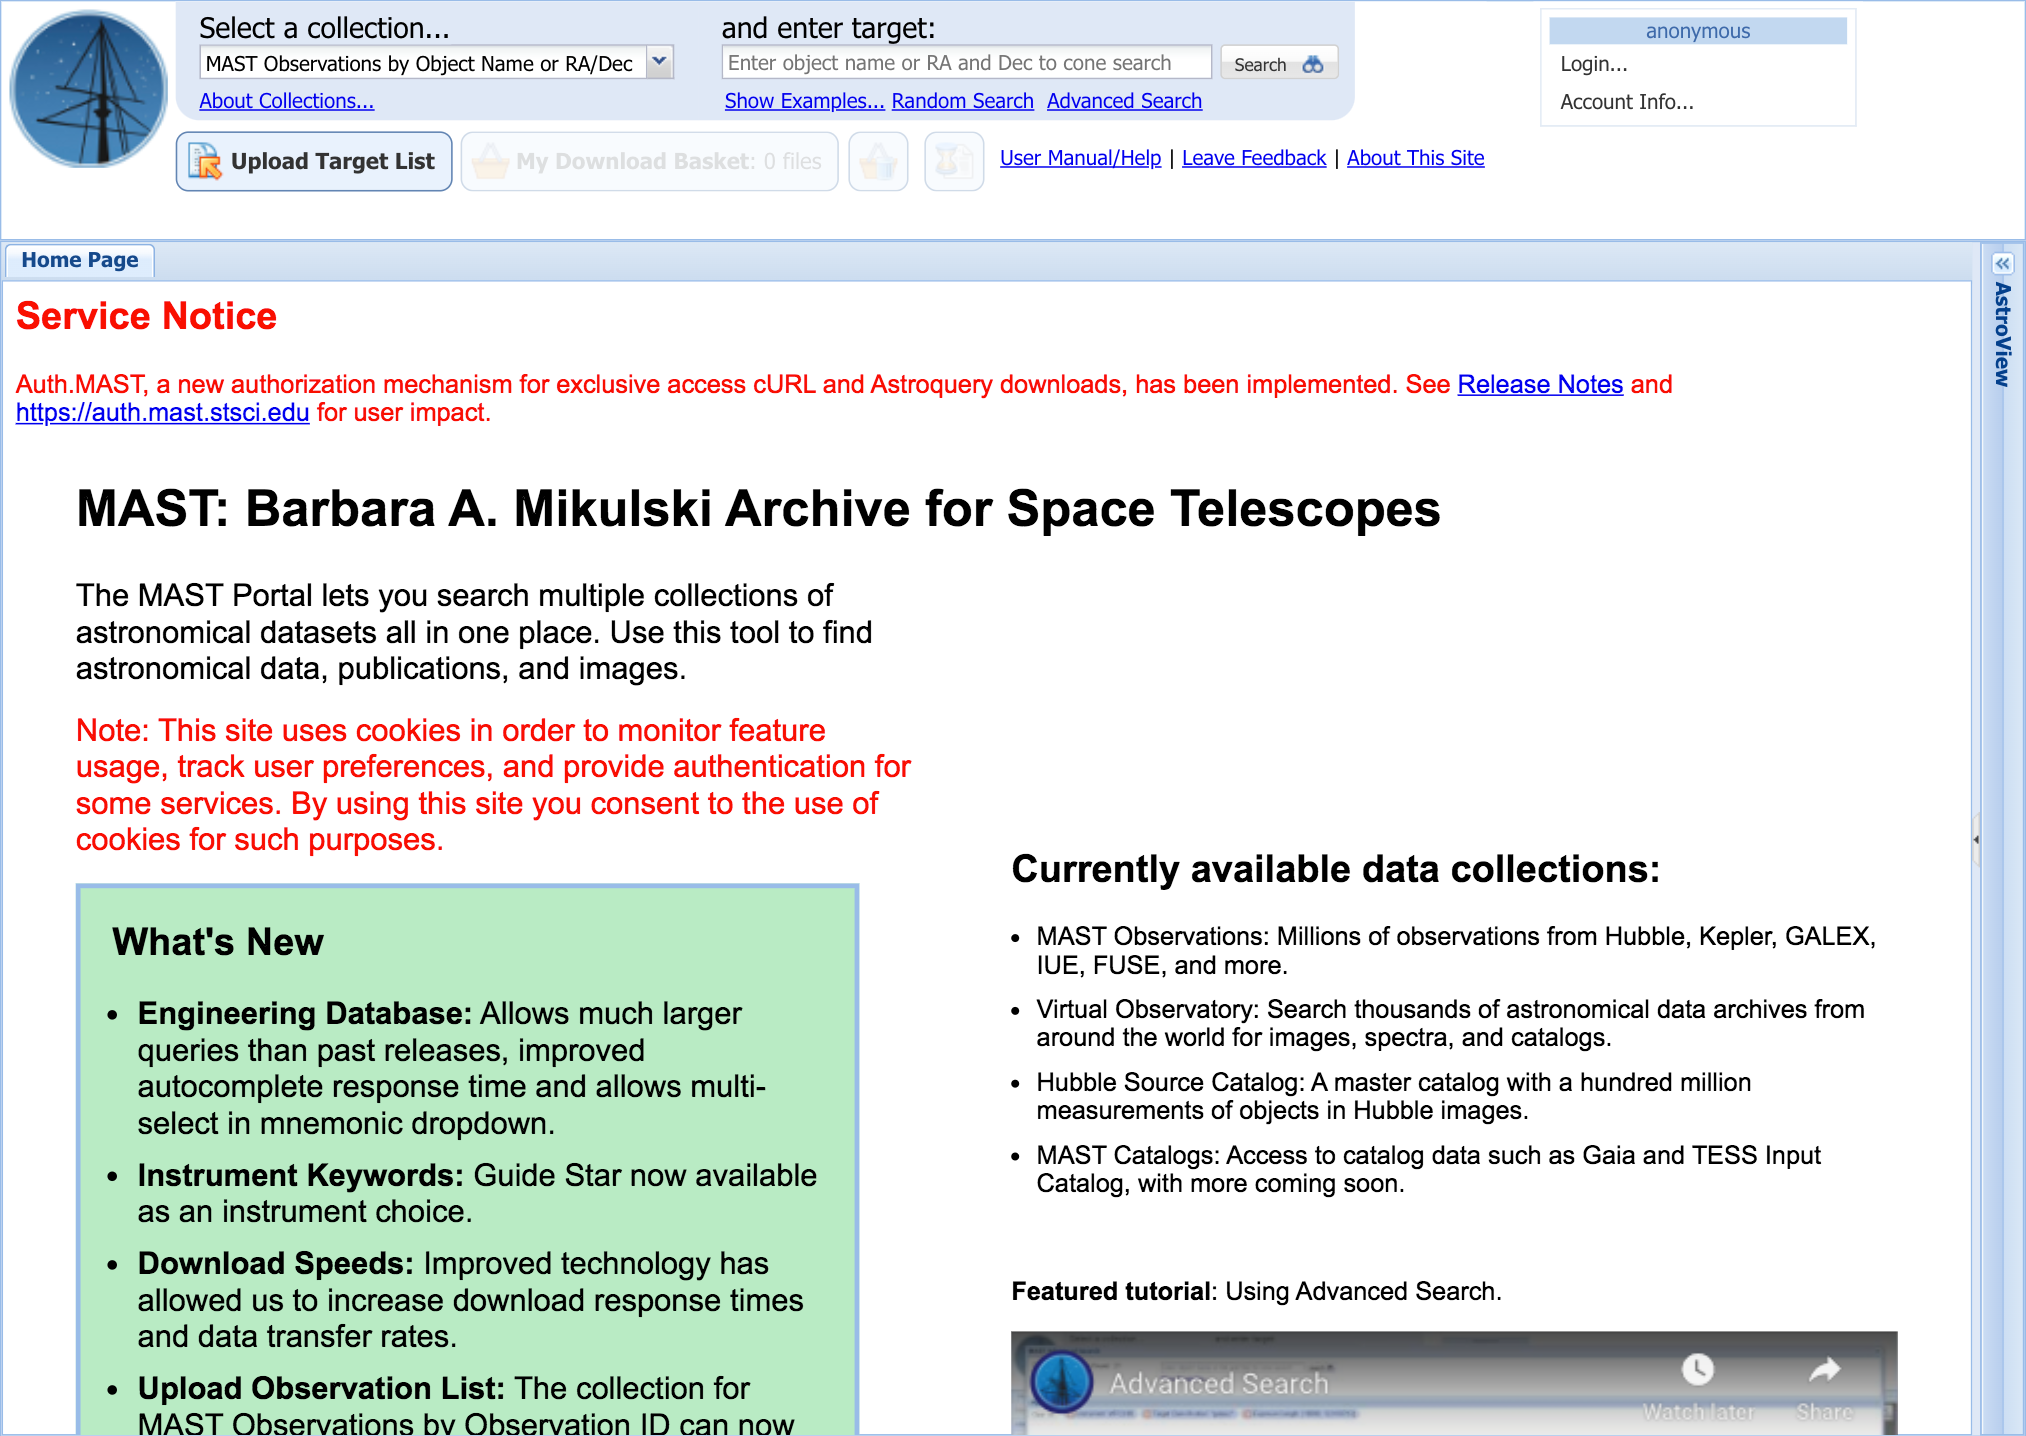 MAST: Barbara A. Mikulski Archive for Space Telescopes